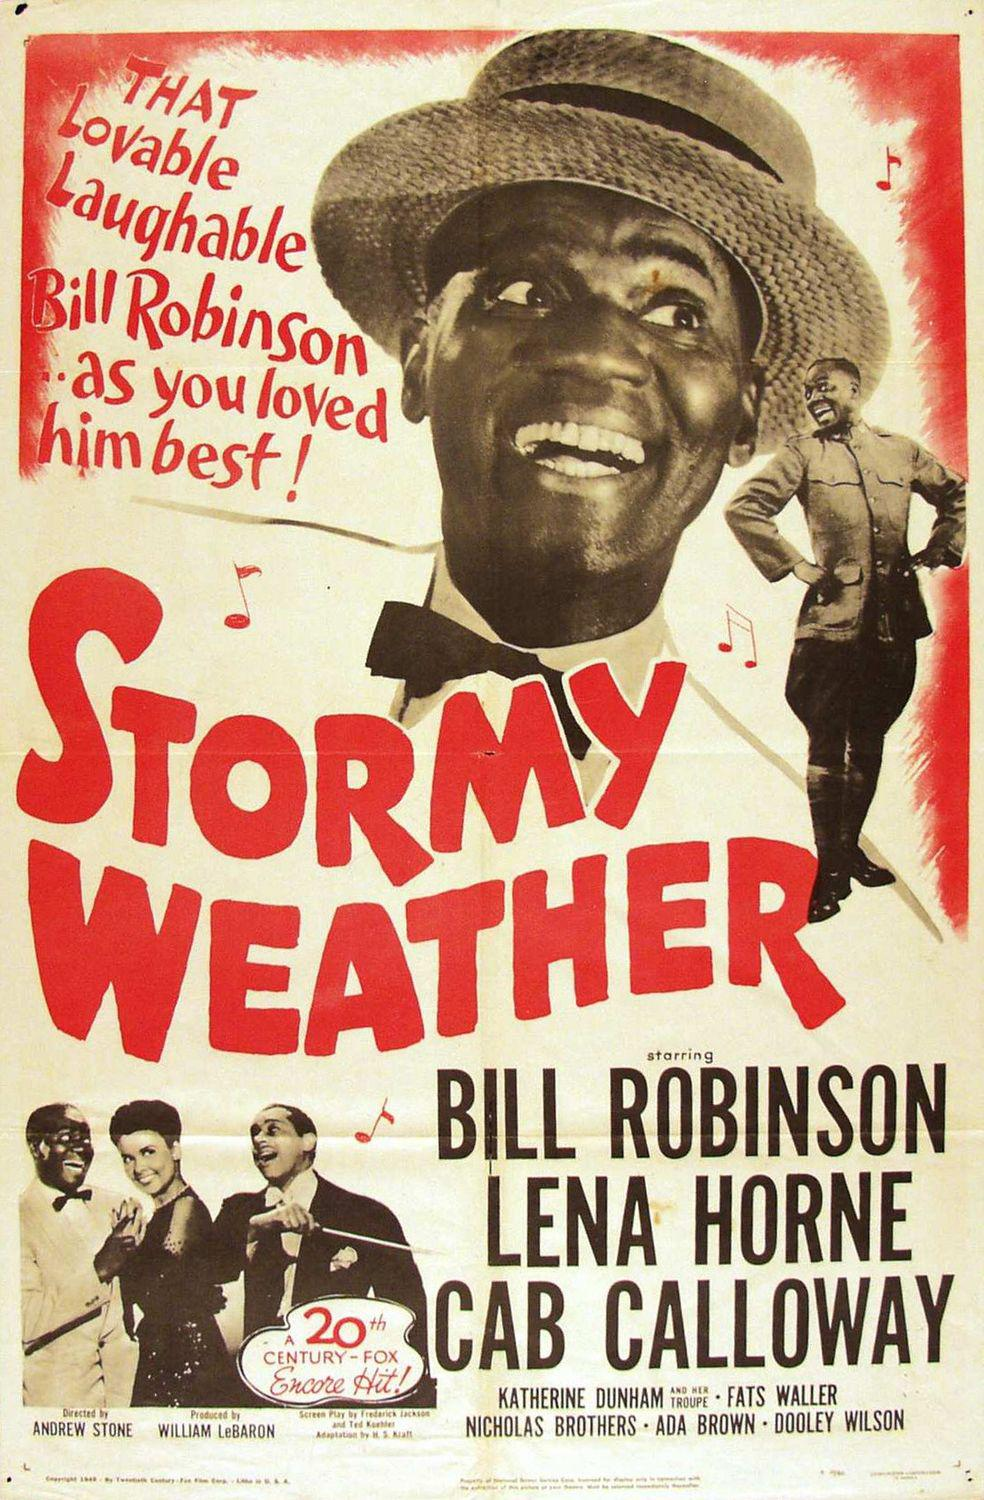 Stormy Weather - That Lovable Laughable Bill Robinson as you loved him best